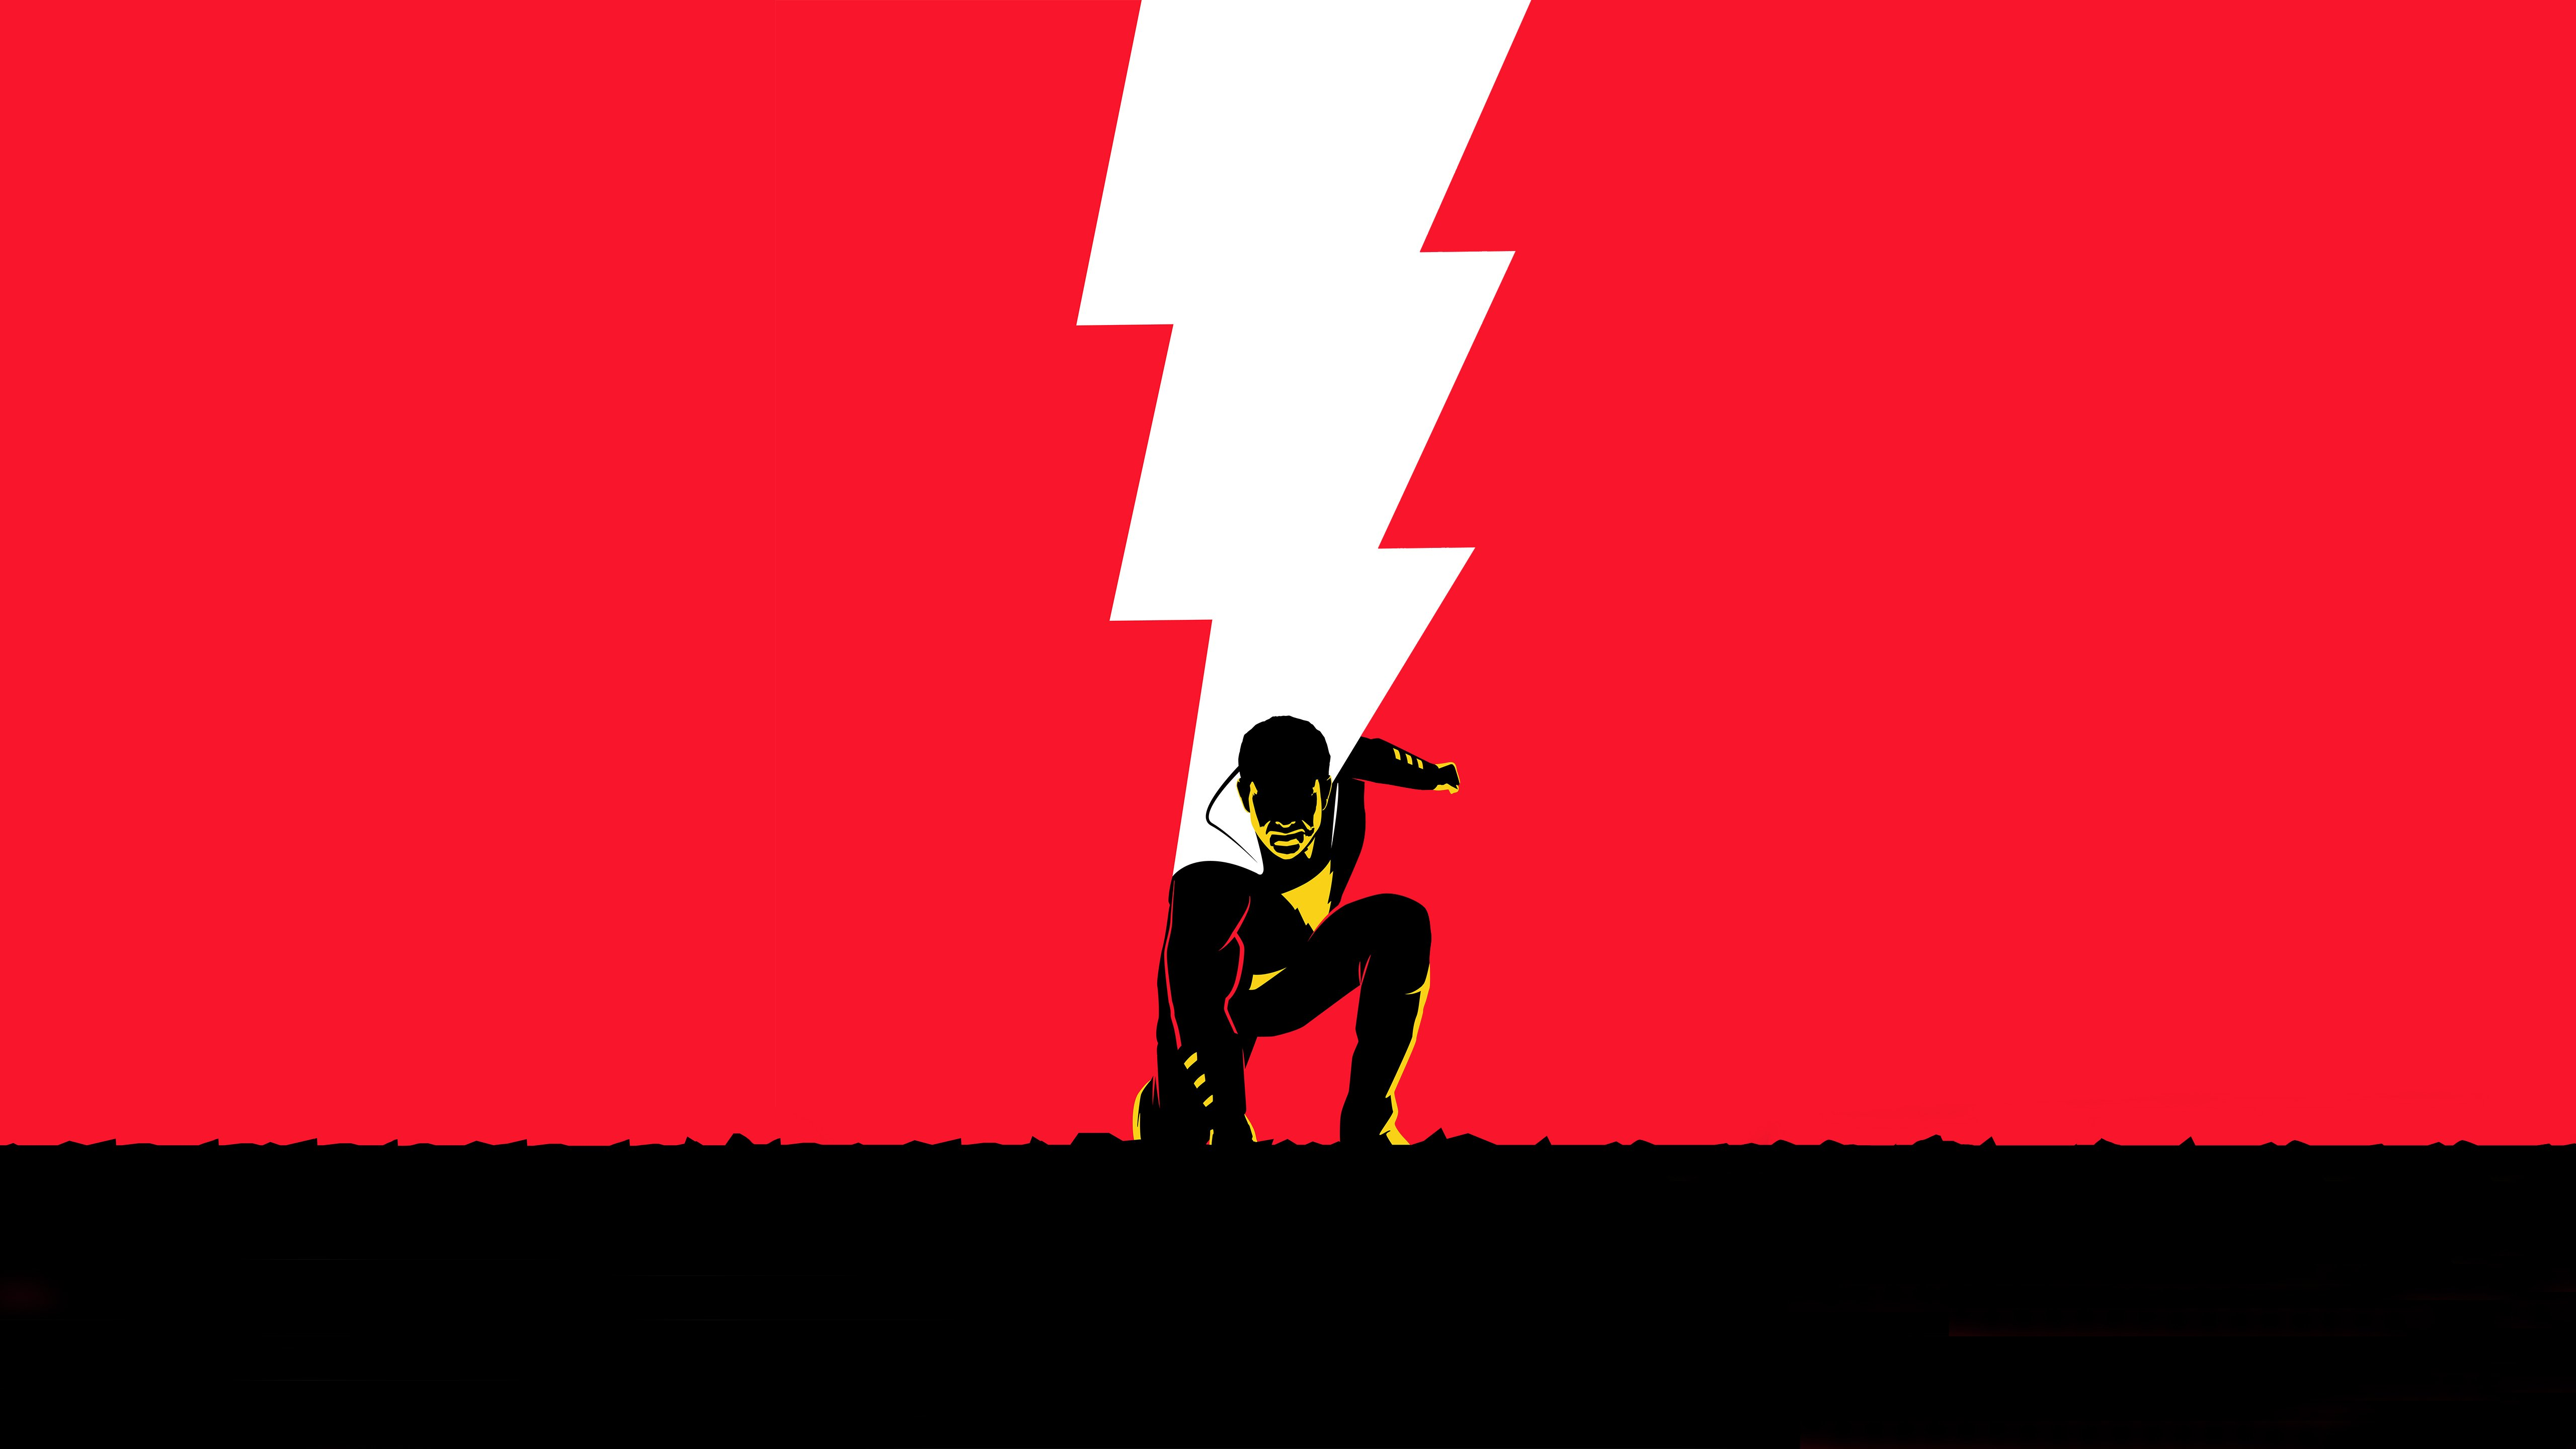 Shazam Wallpaperjpg MyConfinedSpace 5120x2880